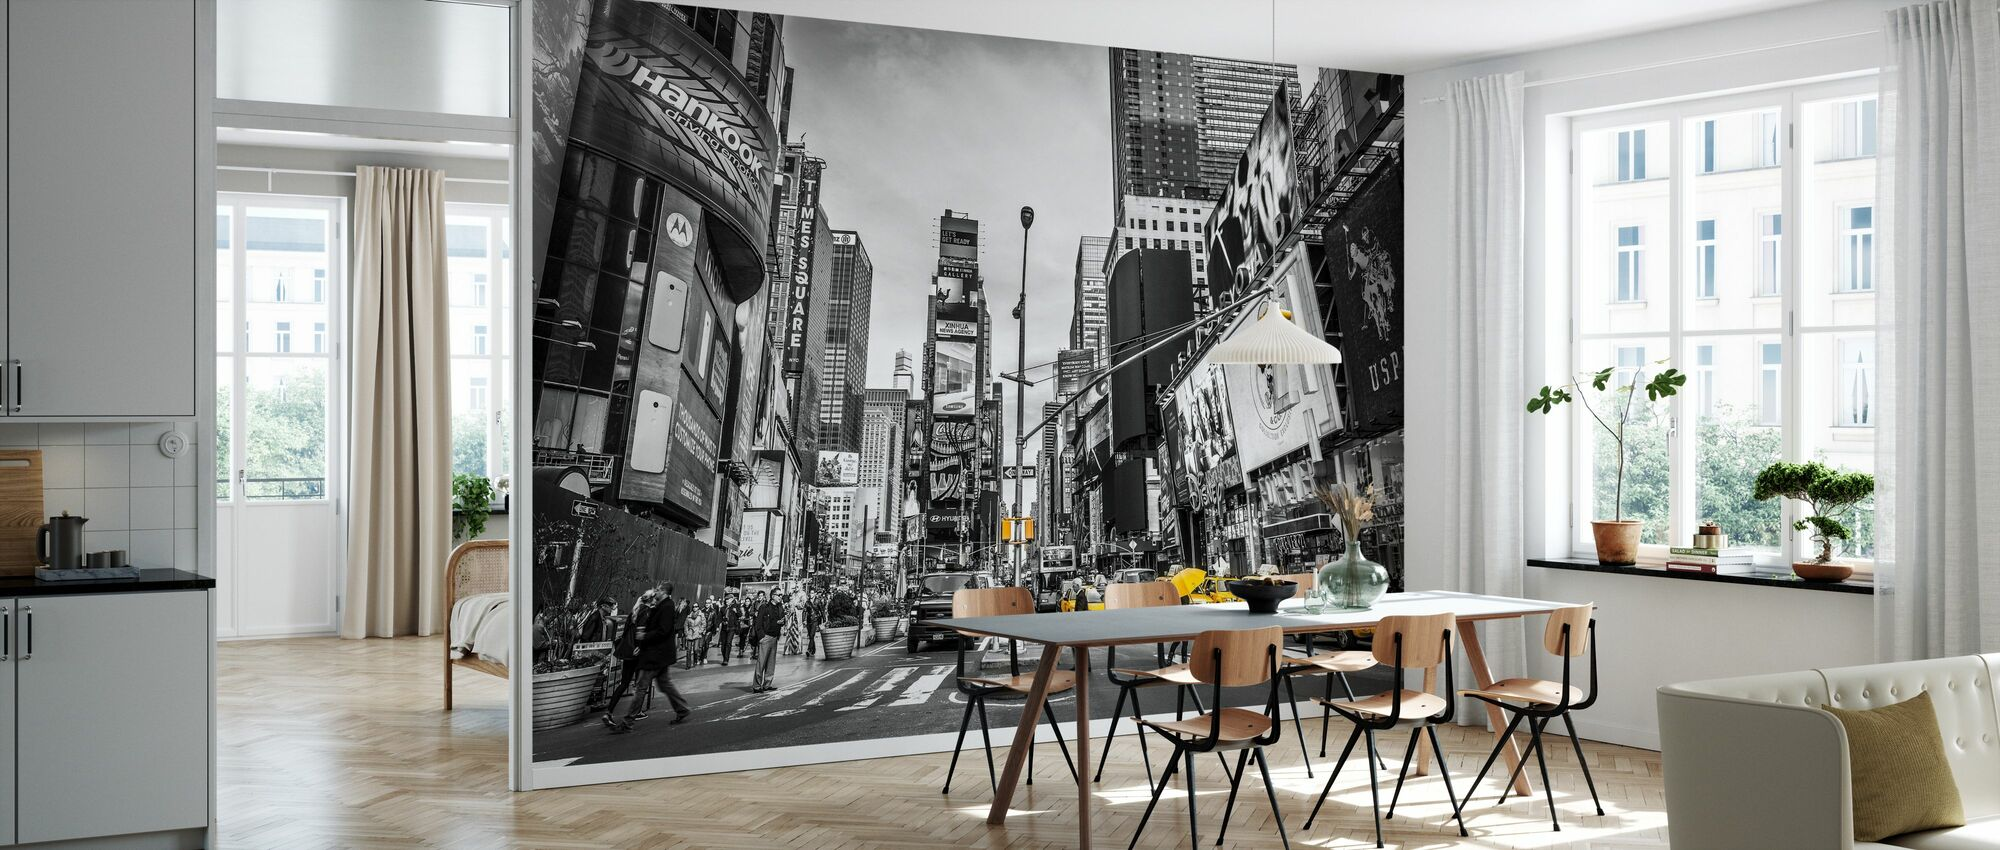 New York City Cabs - Wallpaper - Kitchen